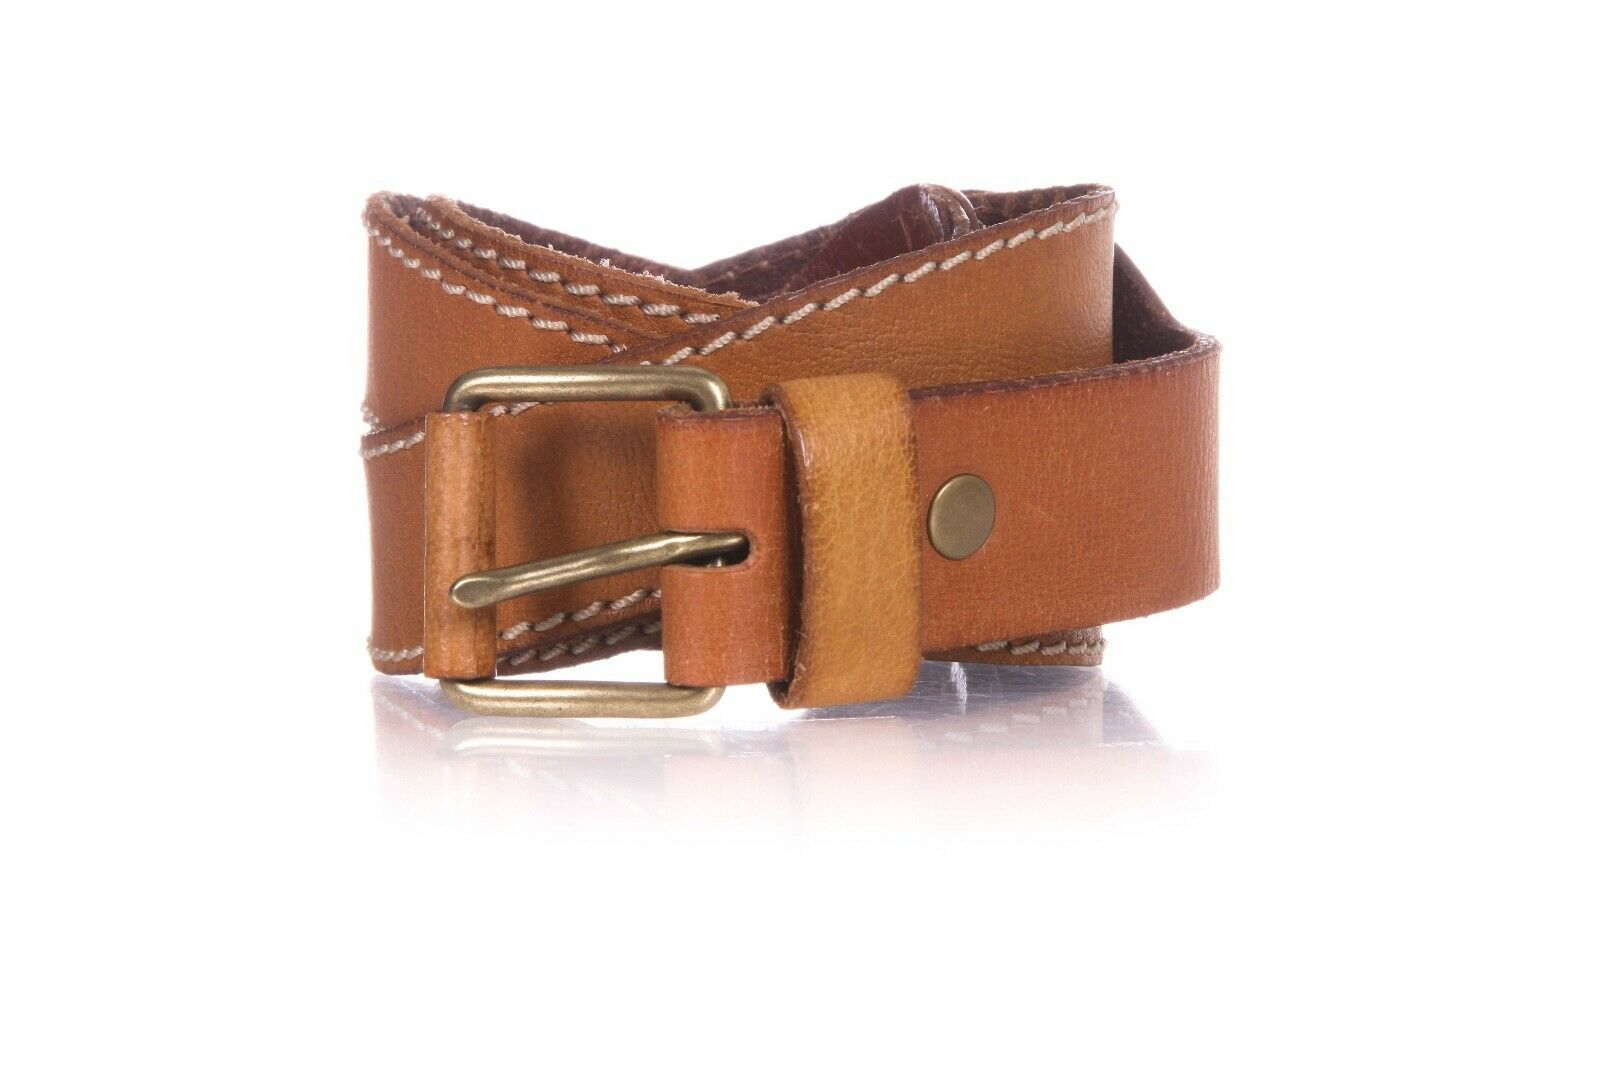 LINEA PELLE Leather Waist Belt Size L